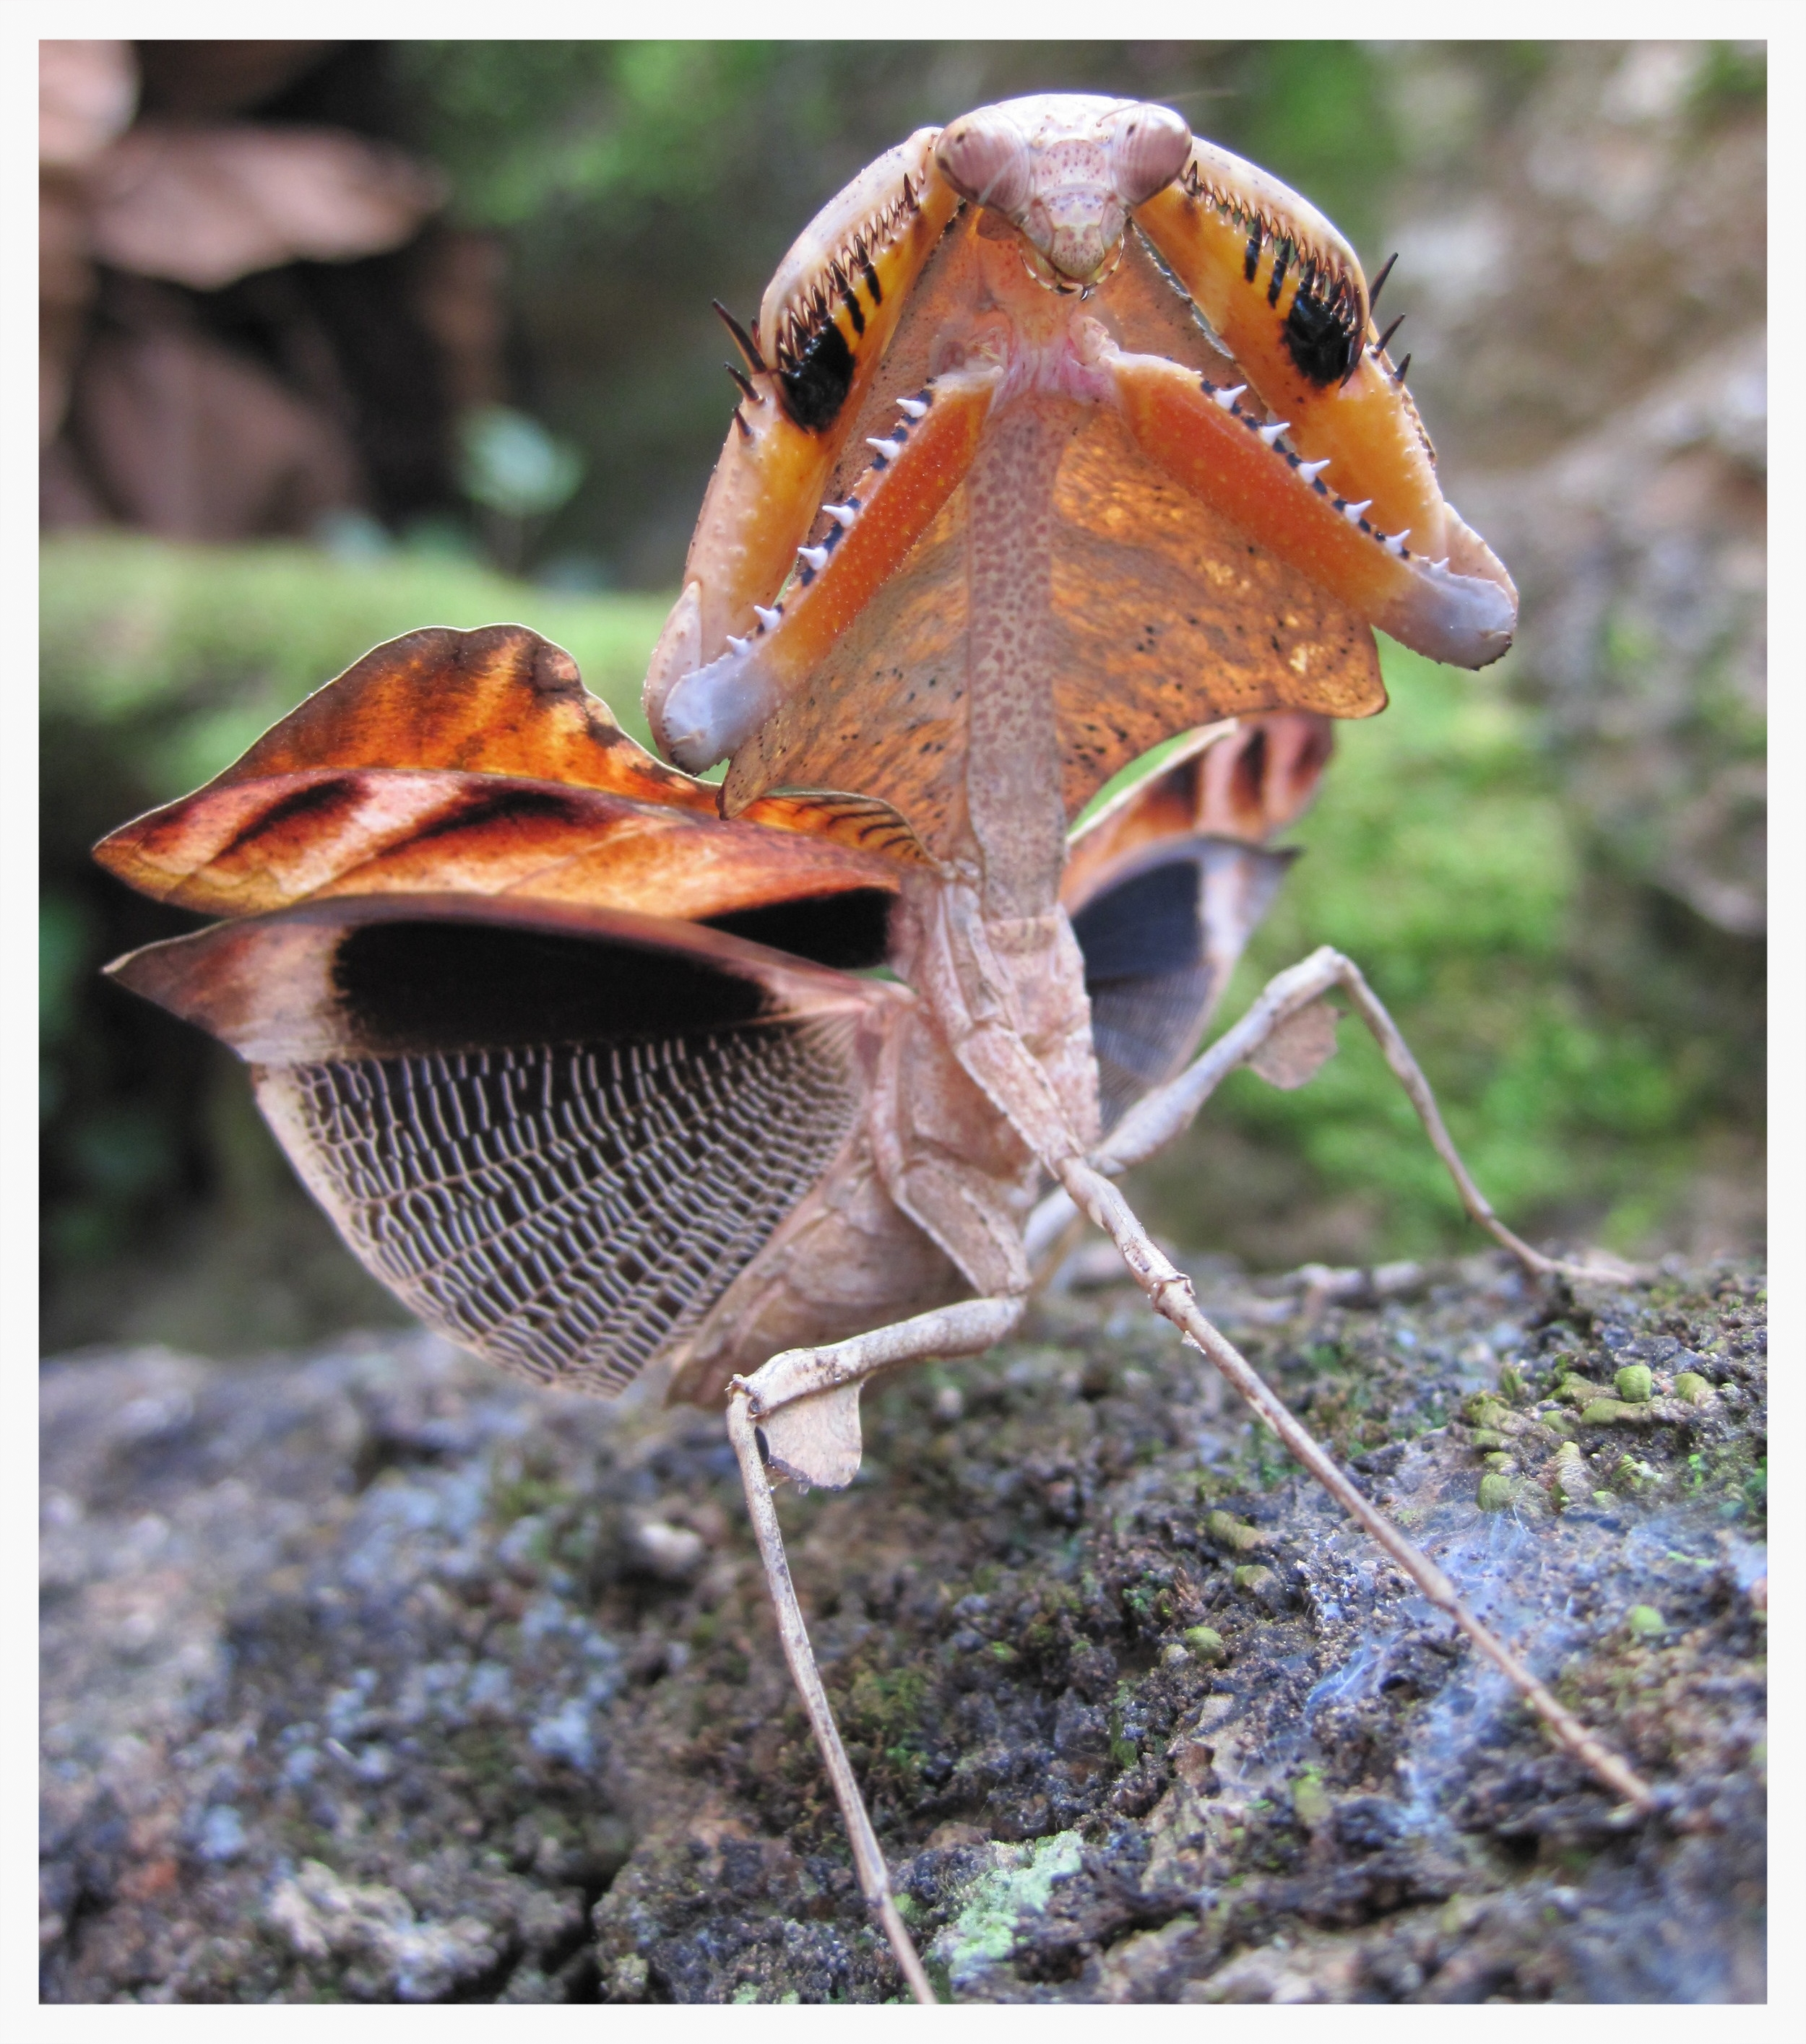 Dead-leaf mantis ( Deroplatys dessicata ) performing its deimatic display. Photo: James O'Hanlon